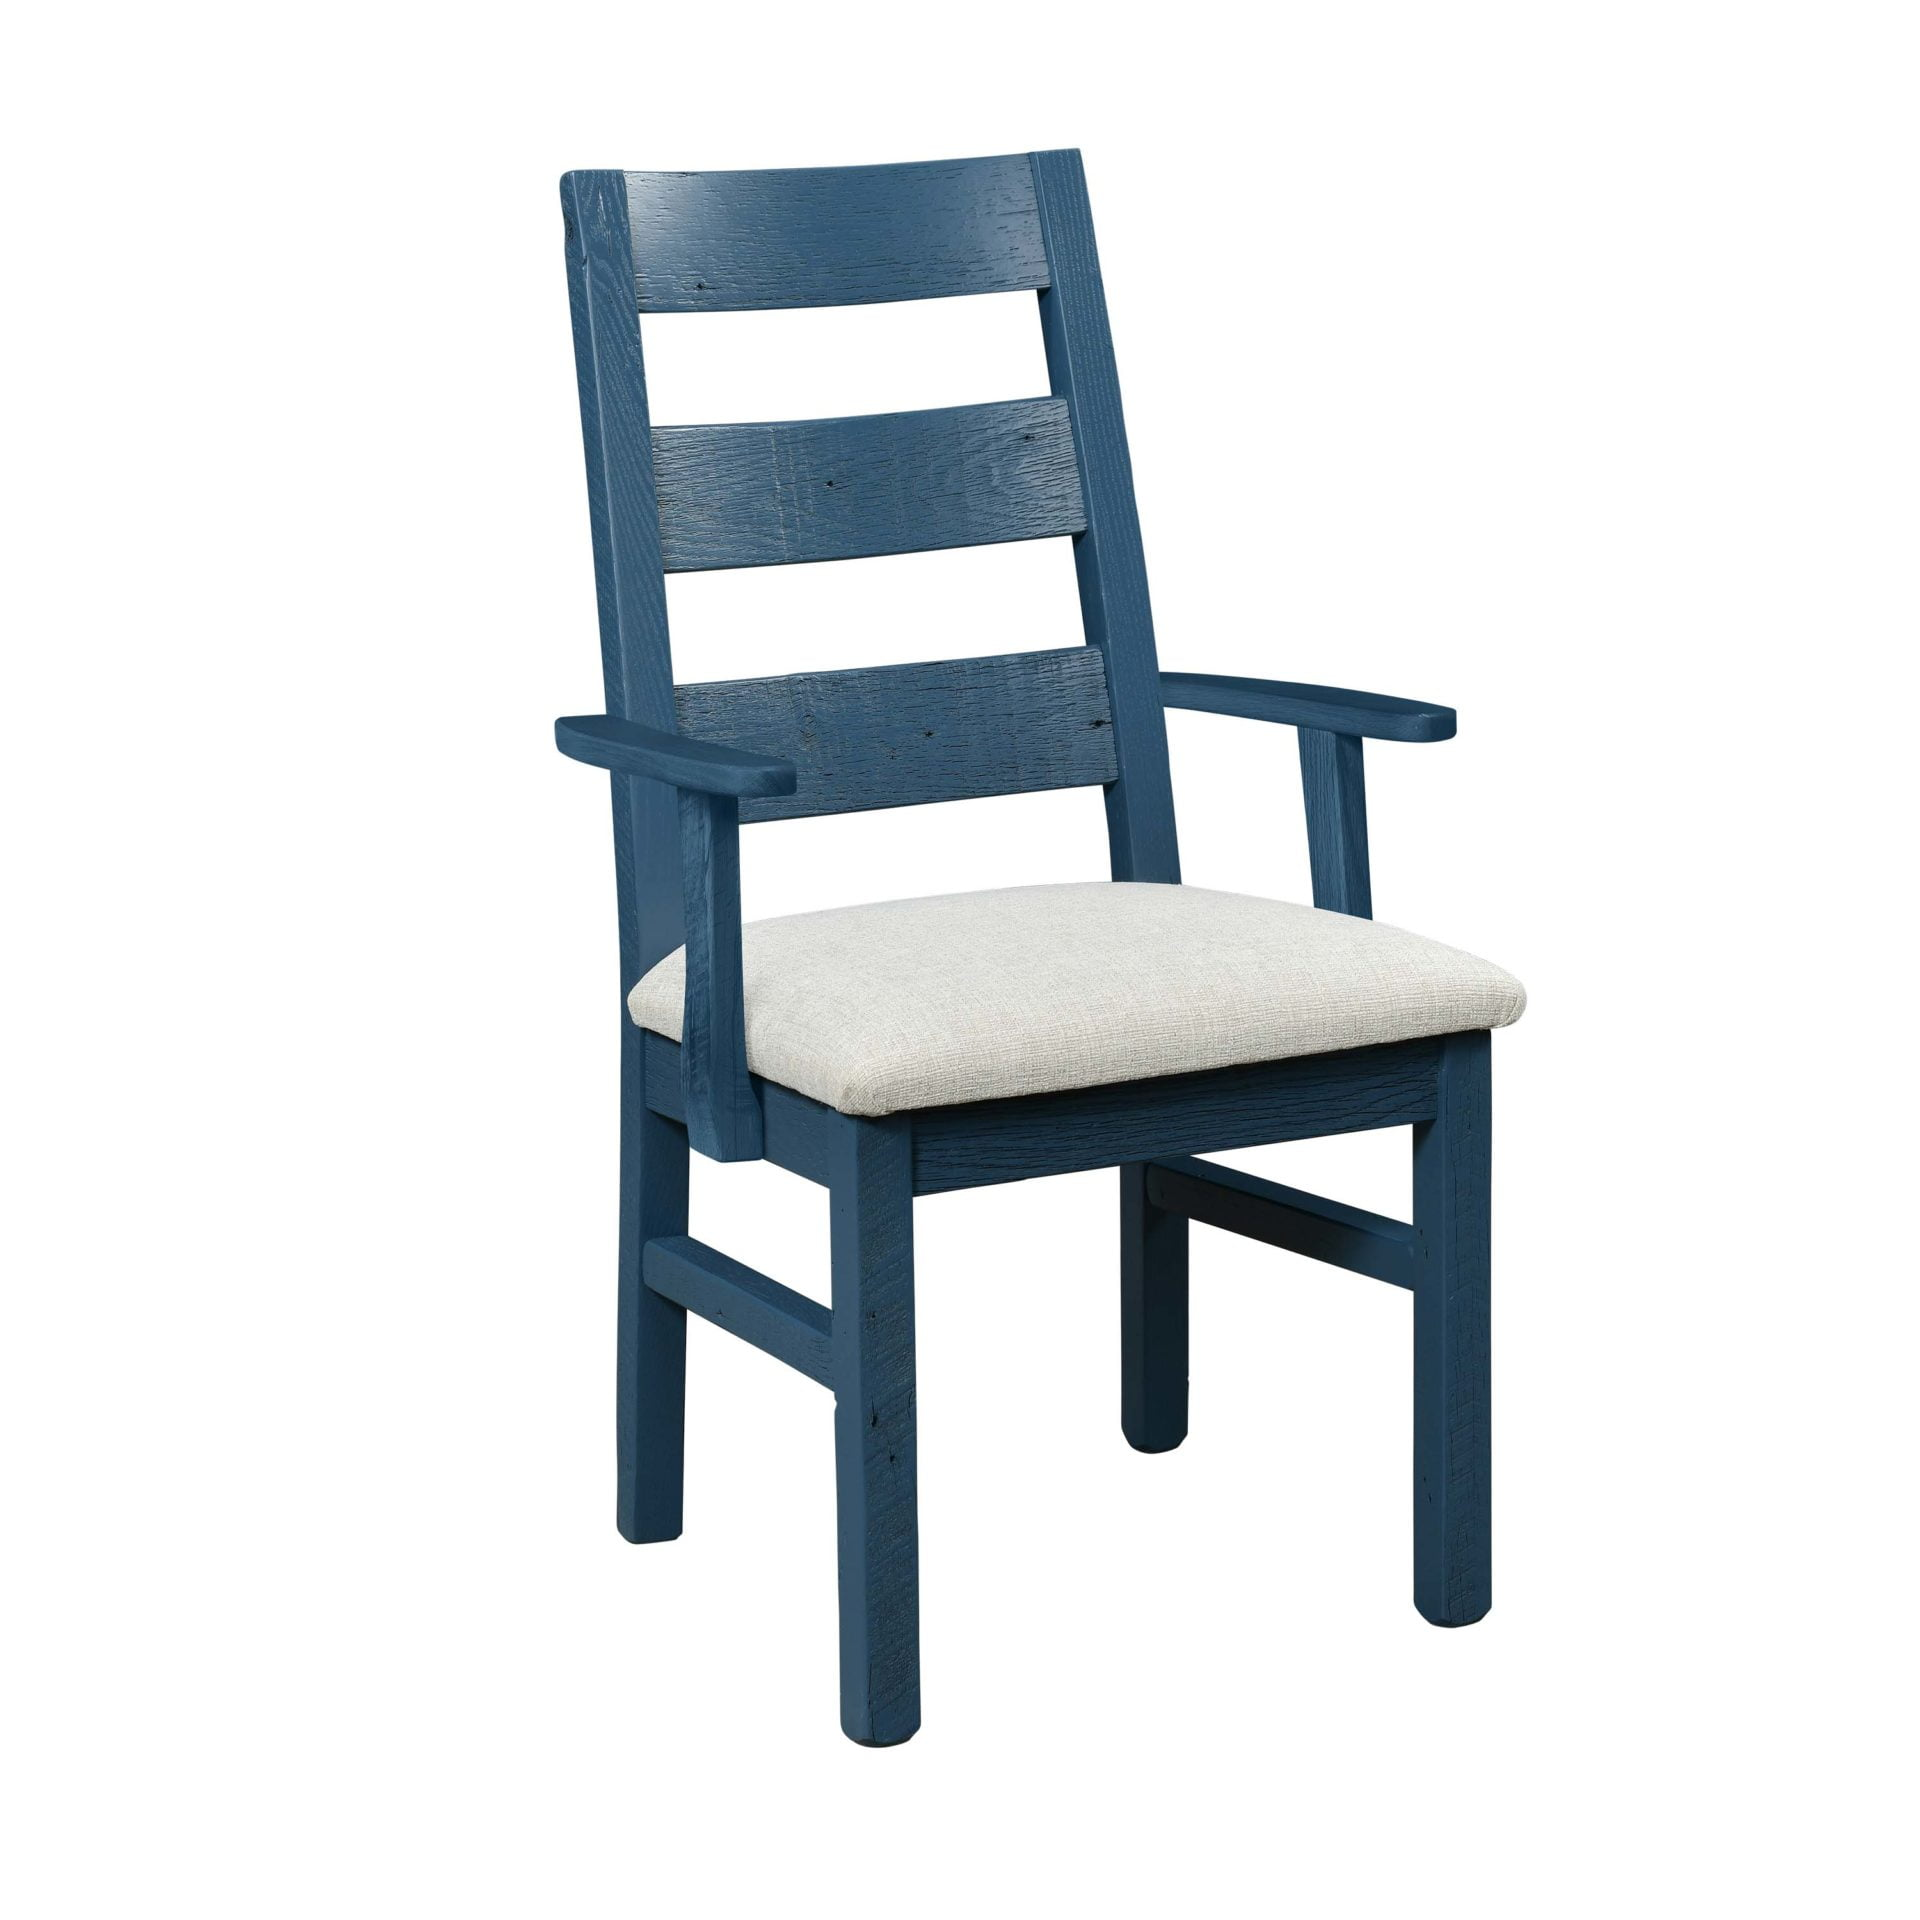 Brighthouse Arm Chair with Upholstered Seat LO RES